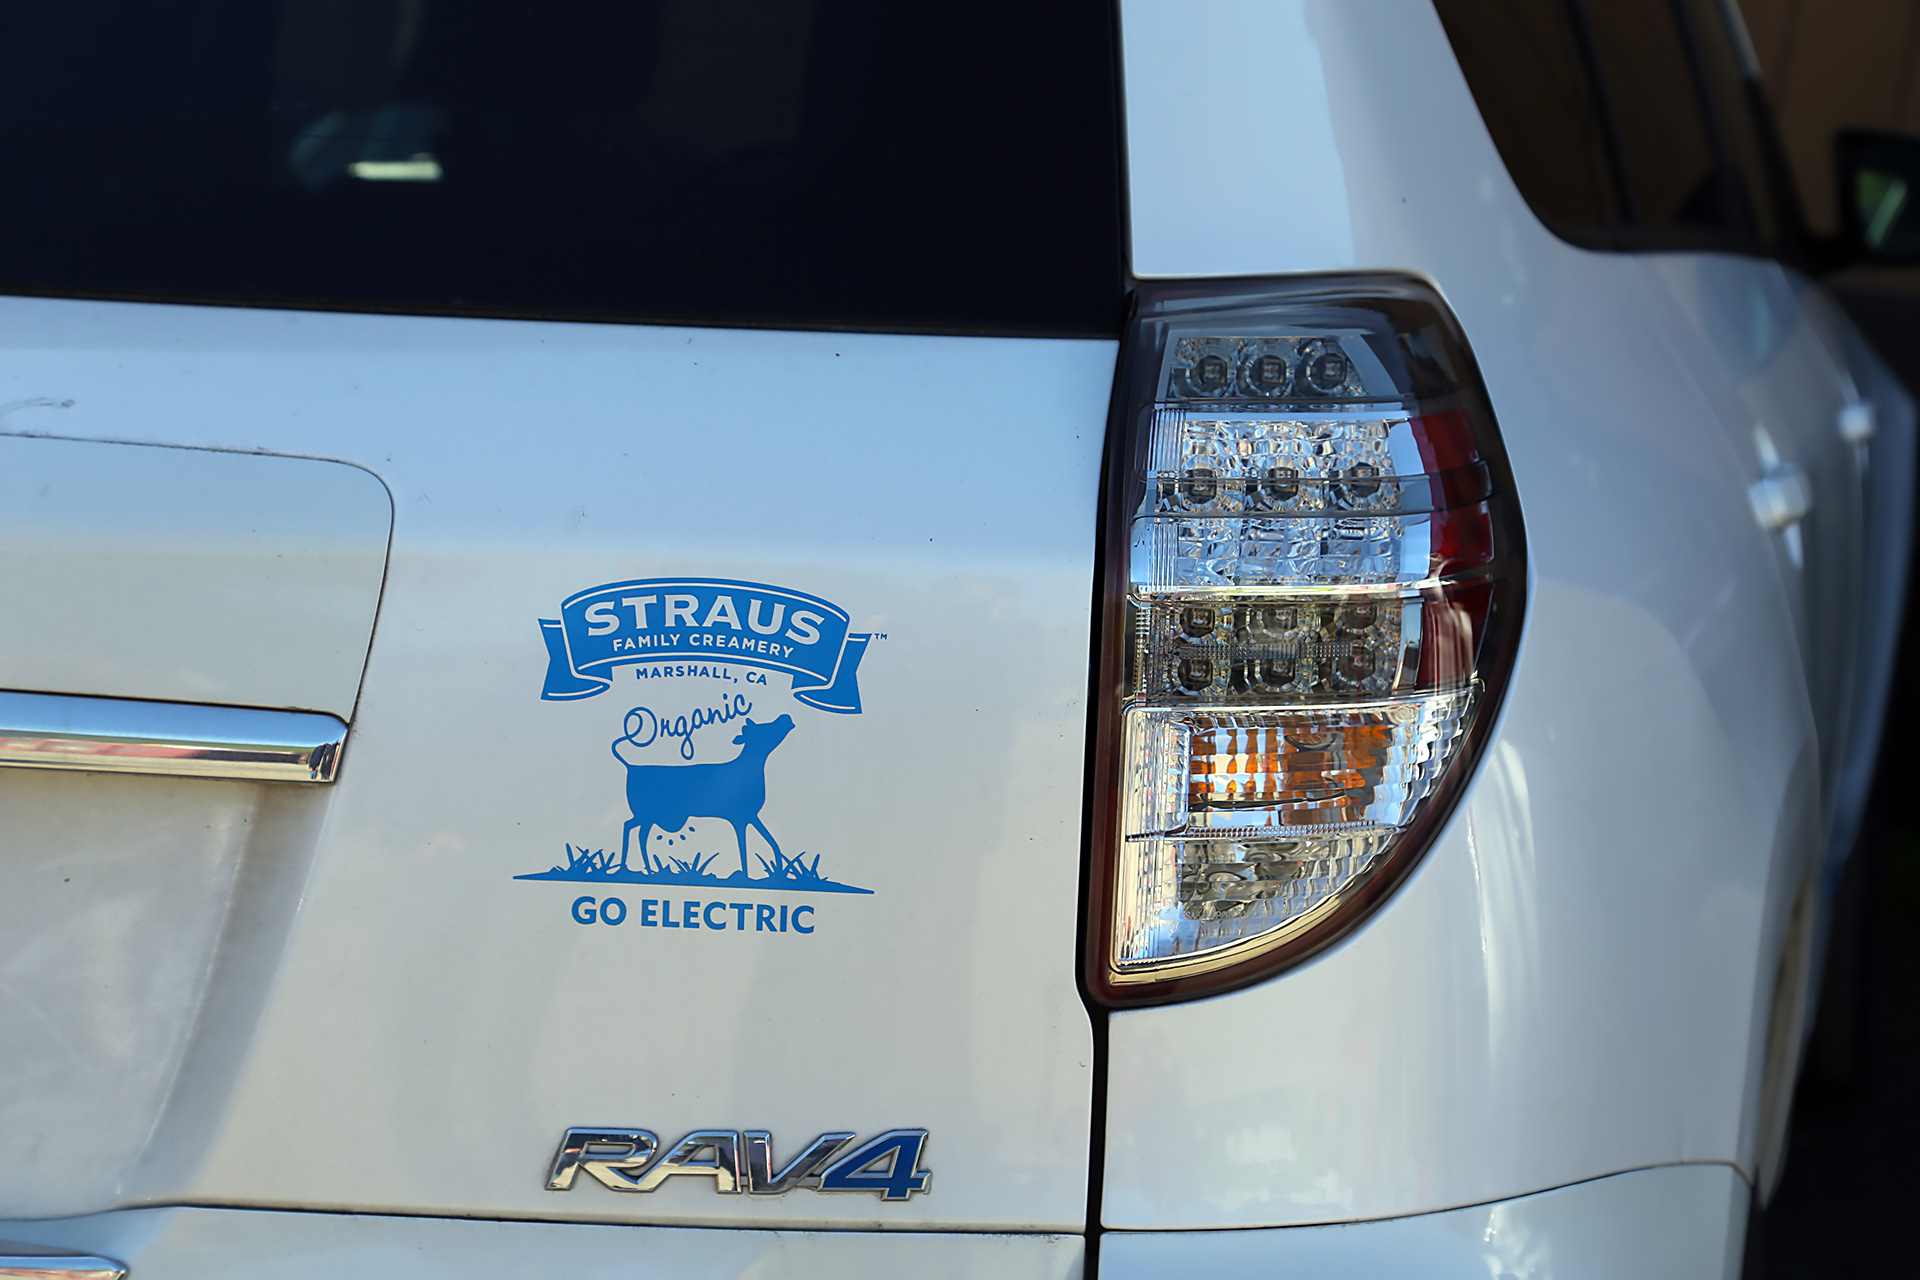 Straus Go Electric!